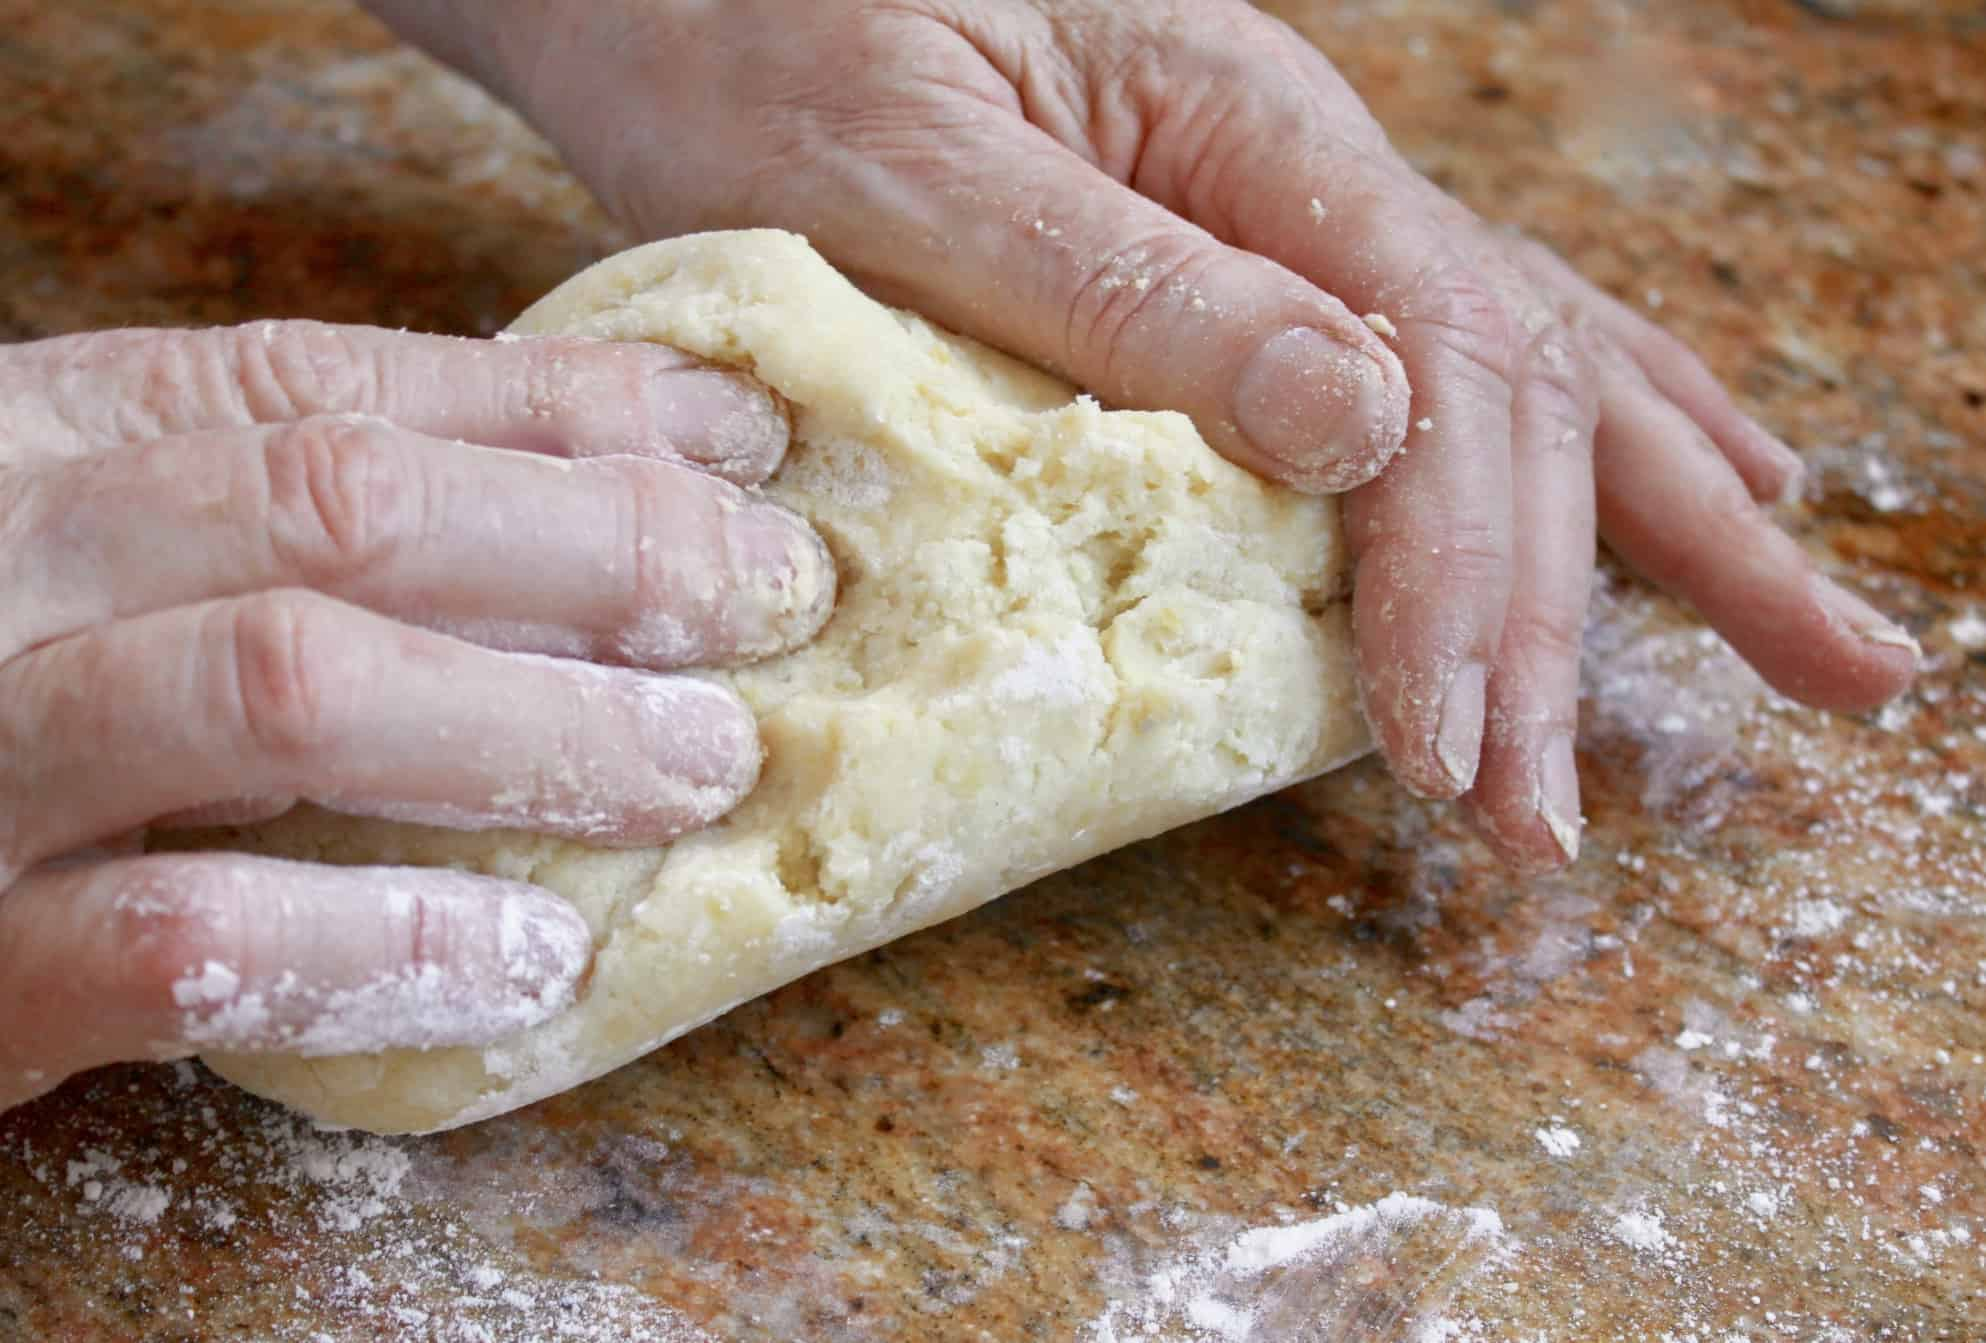 kneading the potato gnocchi dough